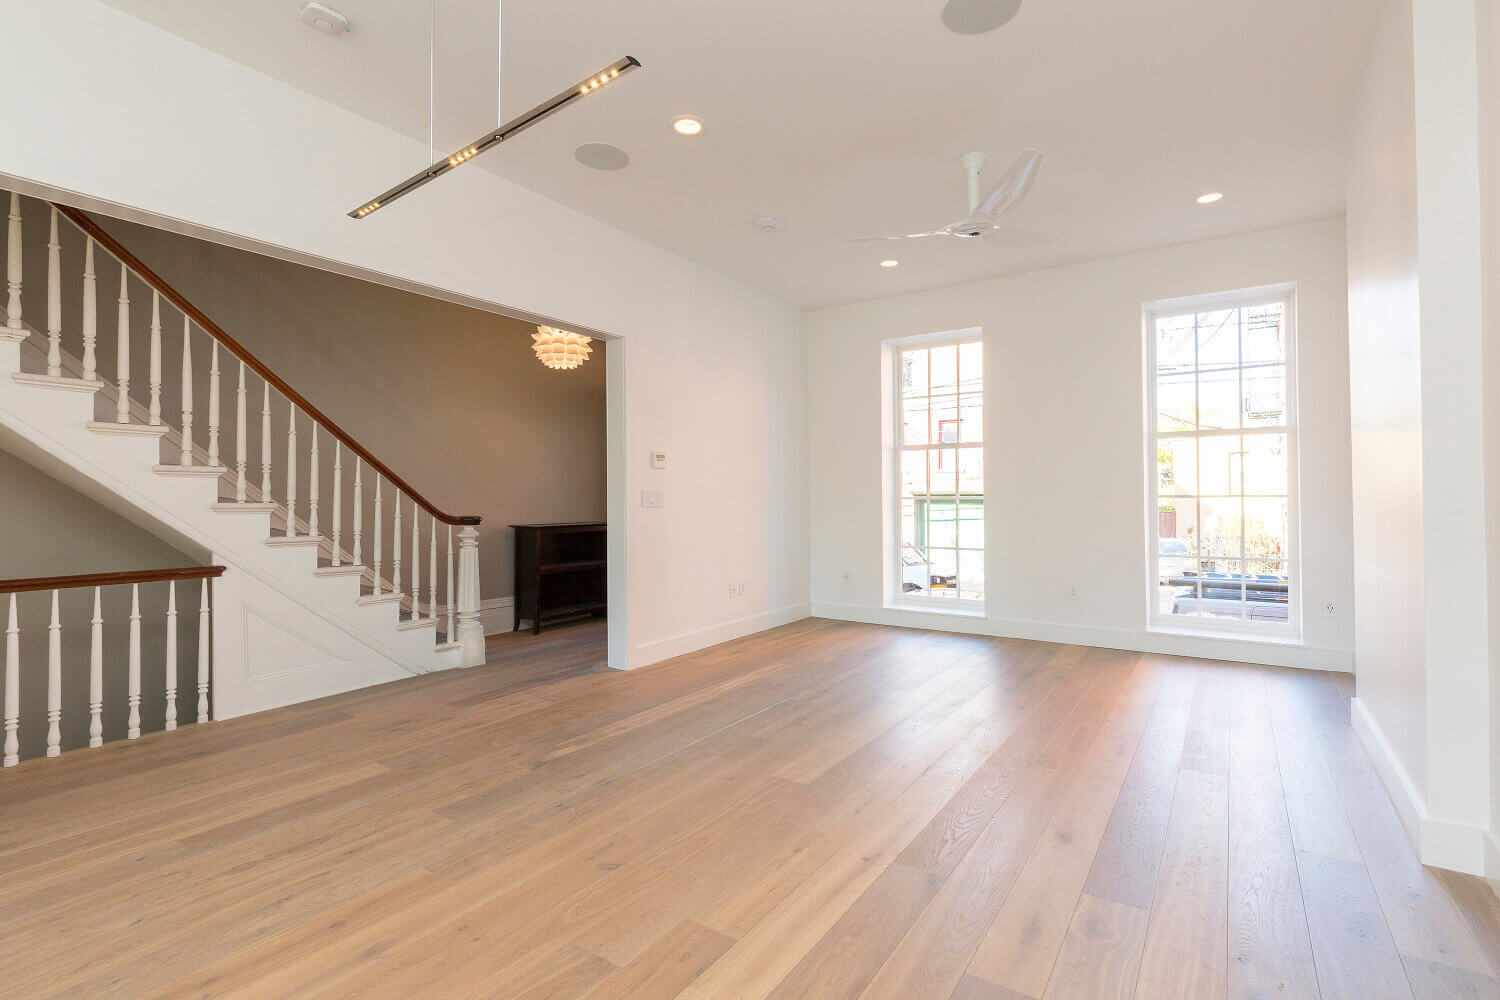 Image of completed Jersey City, NJ Brownstone remodel